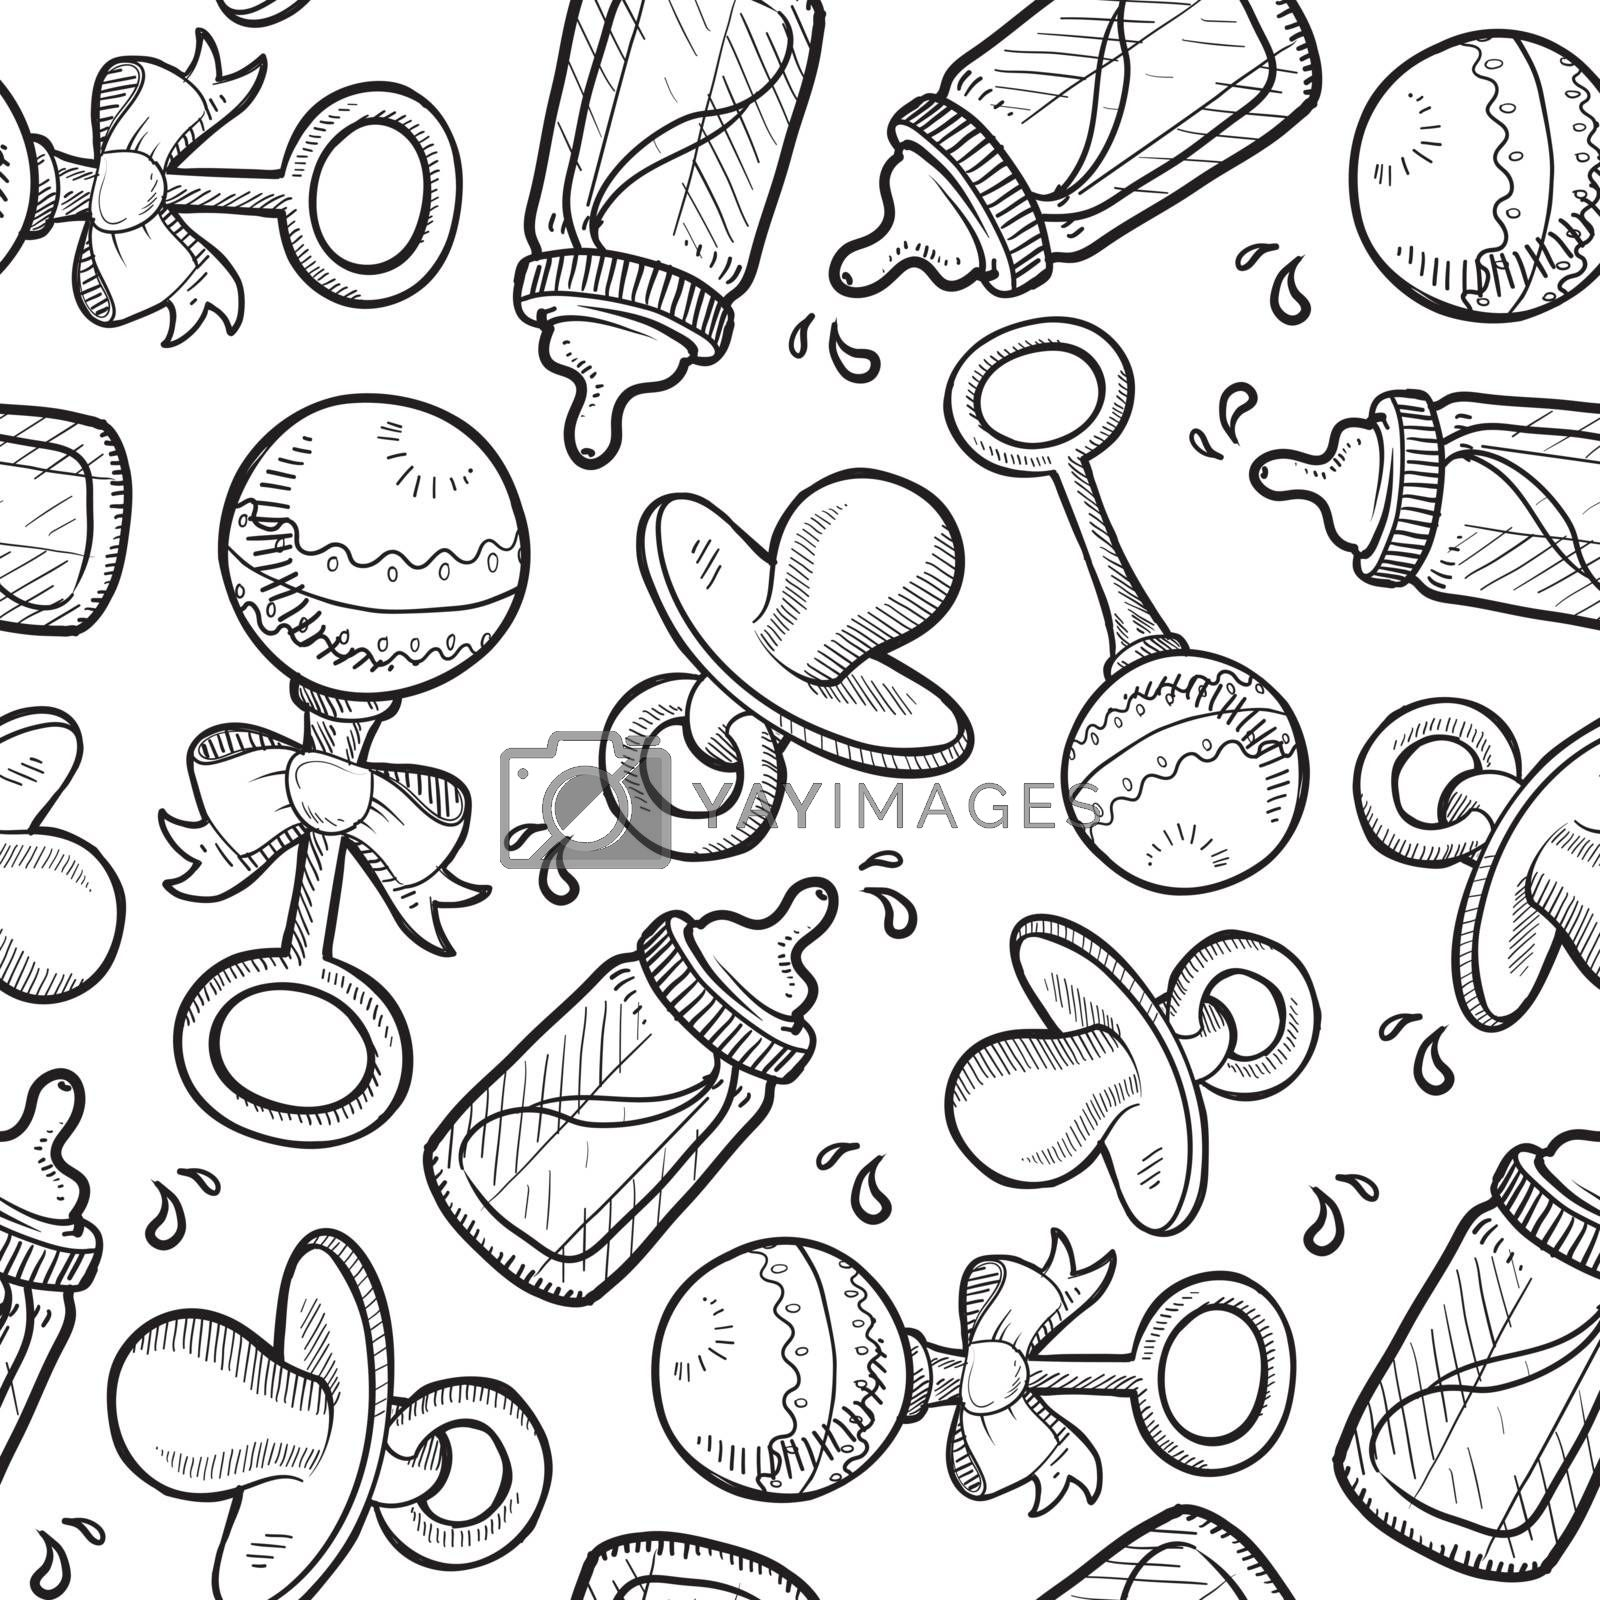 Doodle style and infant objects seamless vector background ready to be tiled. Includes rattle, pacifier, and bottle.